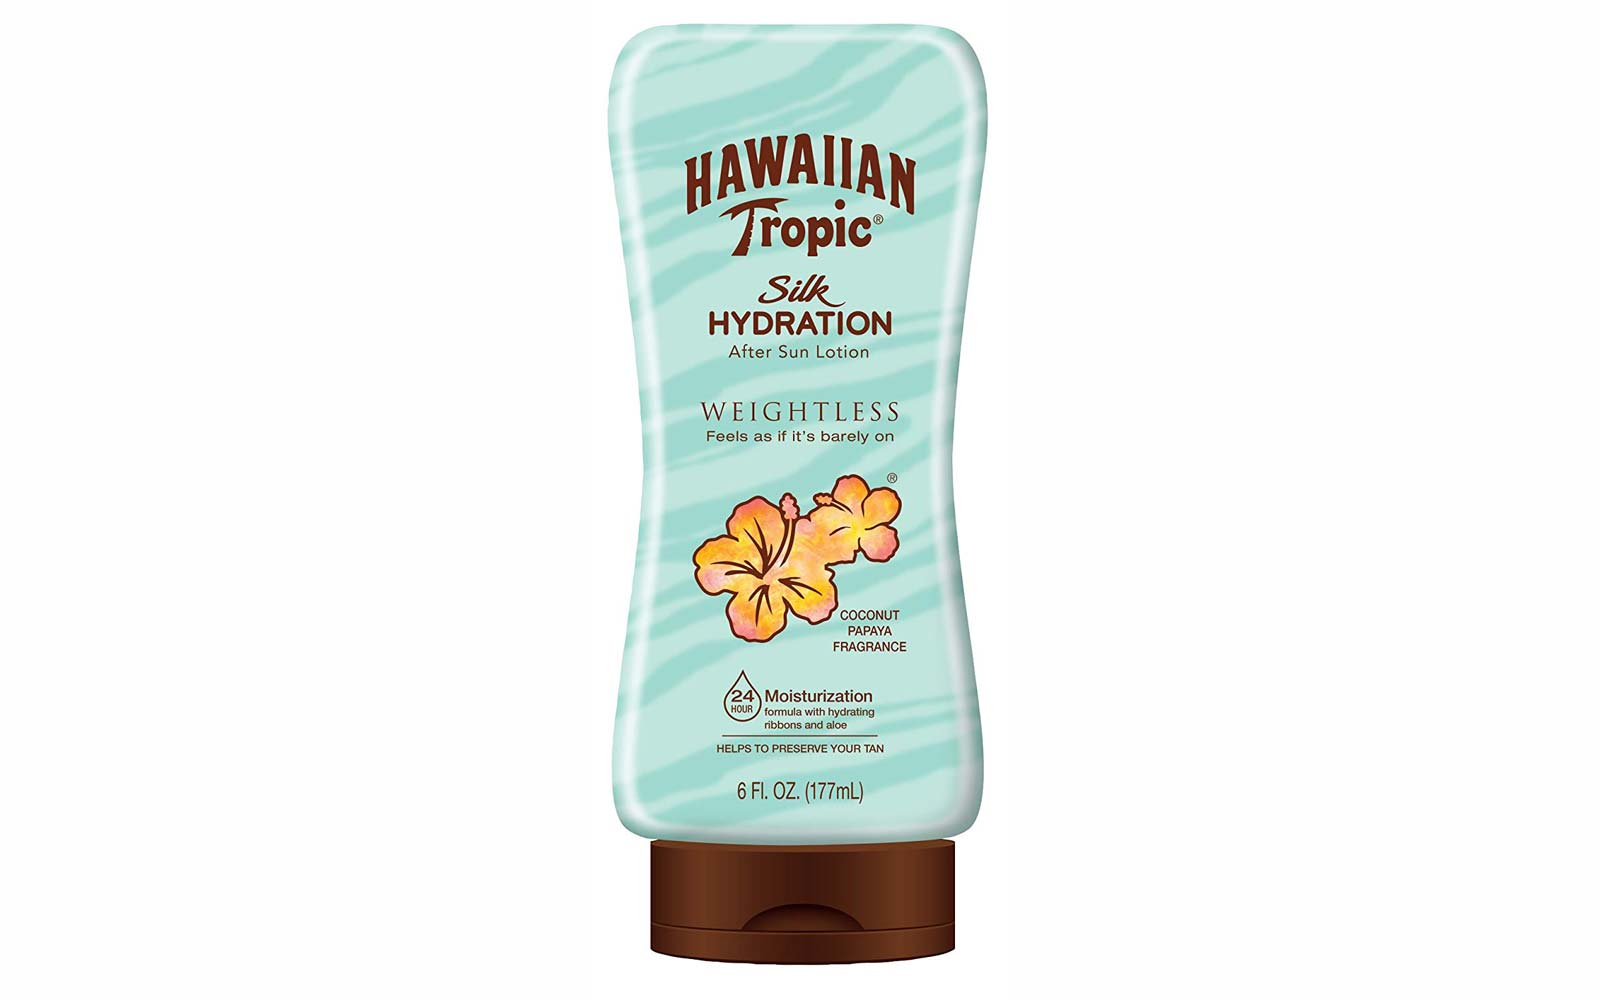 Hawaiian Tropic Silk Hydration Weightless After Sun Lotion